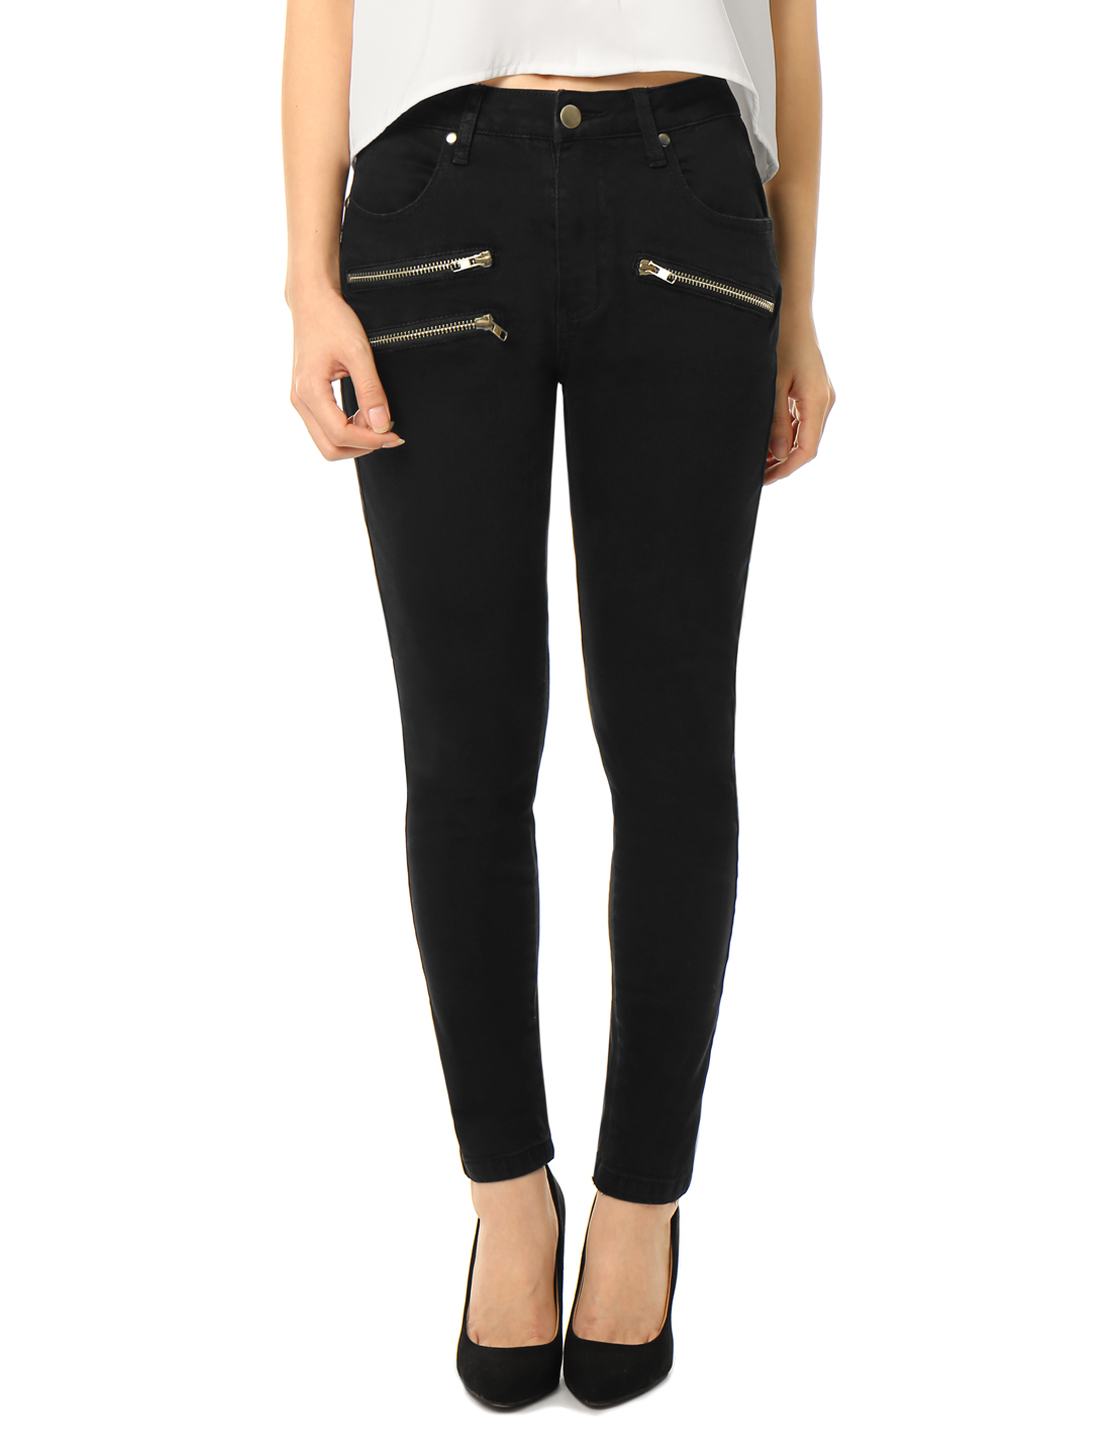 Women Mid Rise Zipper Decor Stretchy Skinny Jeans Black M